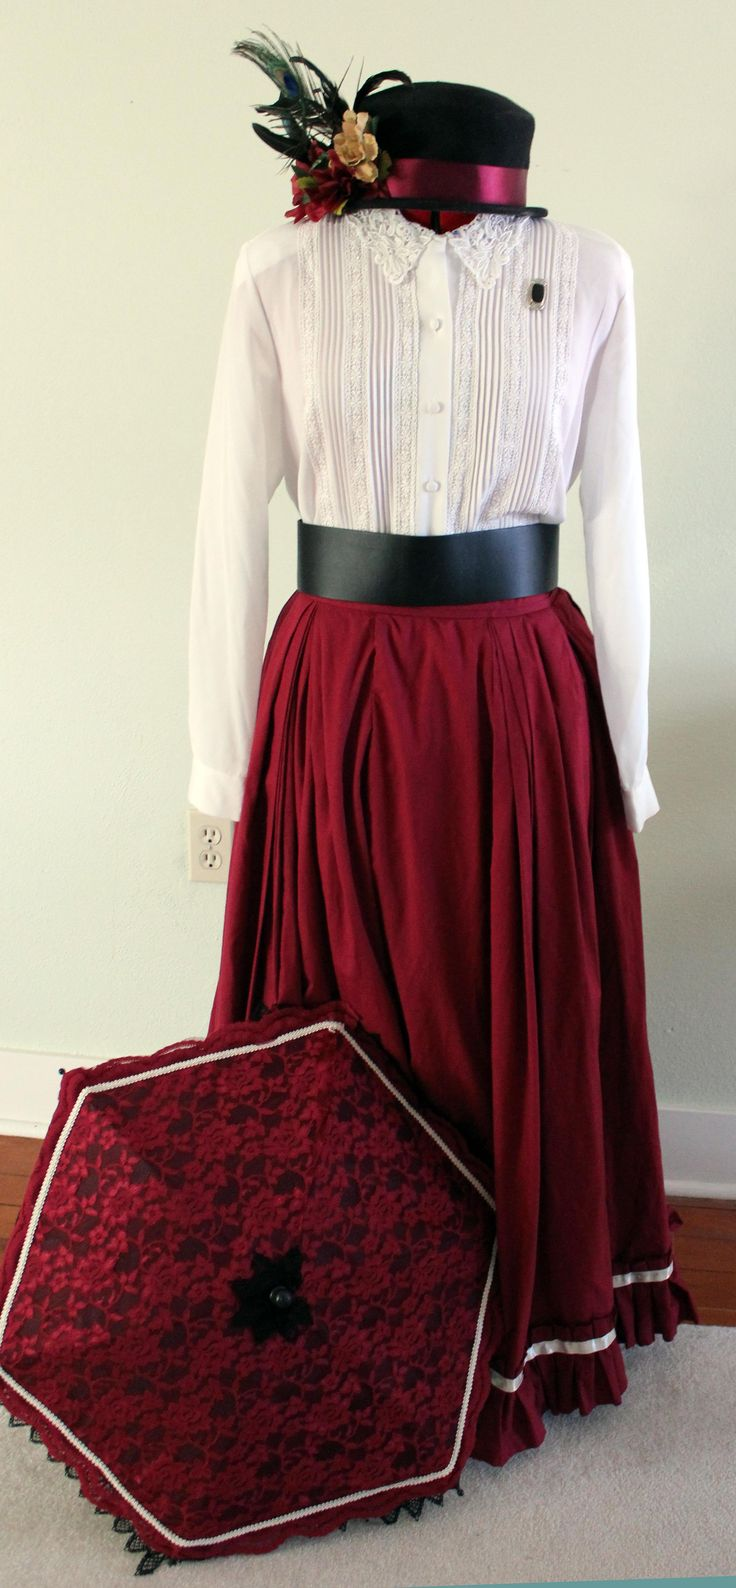 How to make an easy women's Victorian costume dress with items in your closet.Using a full skirt, blouse, belt and accessories you will look Victorian in no time.